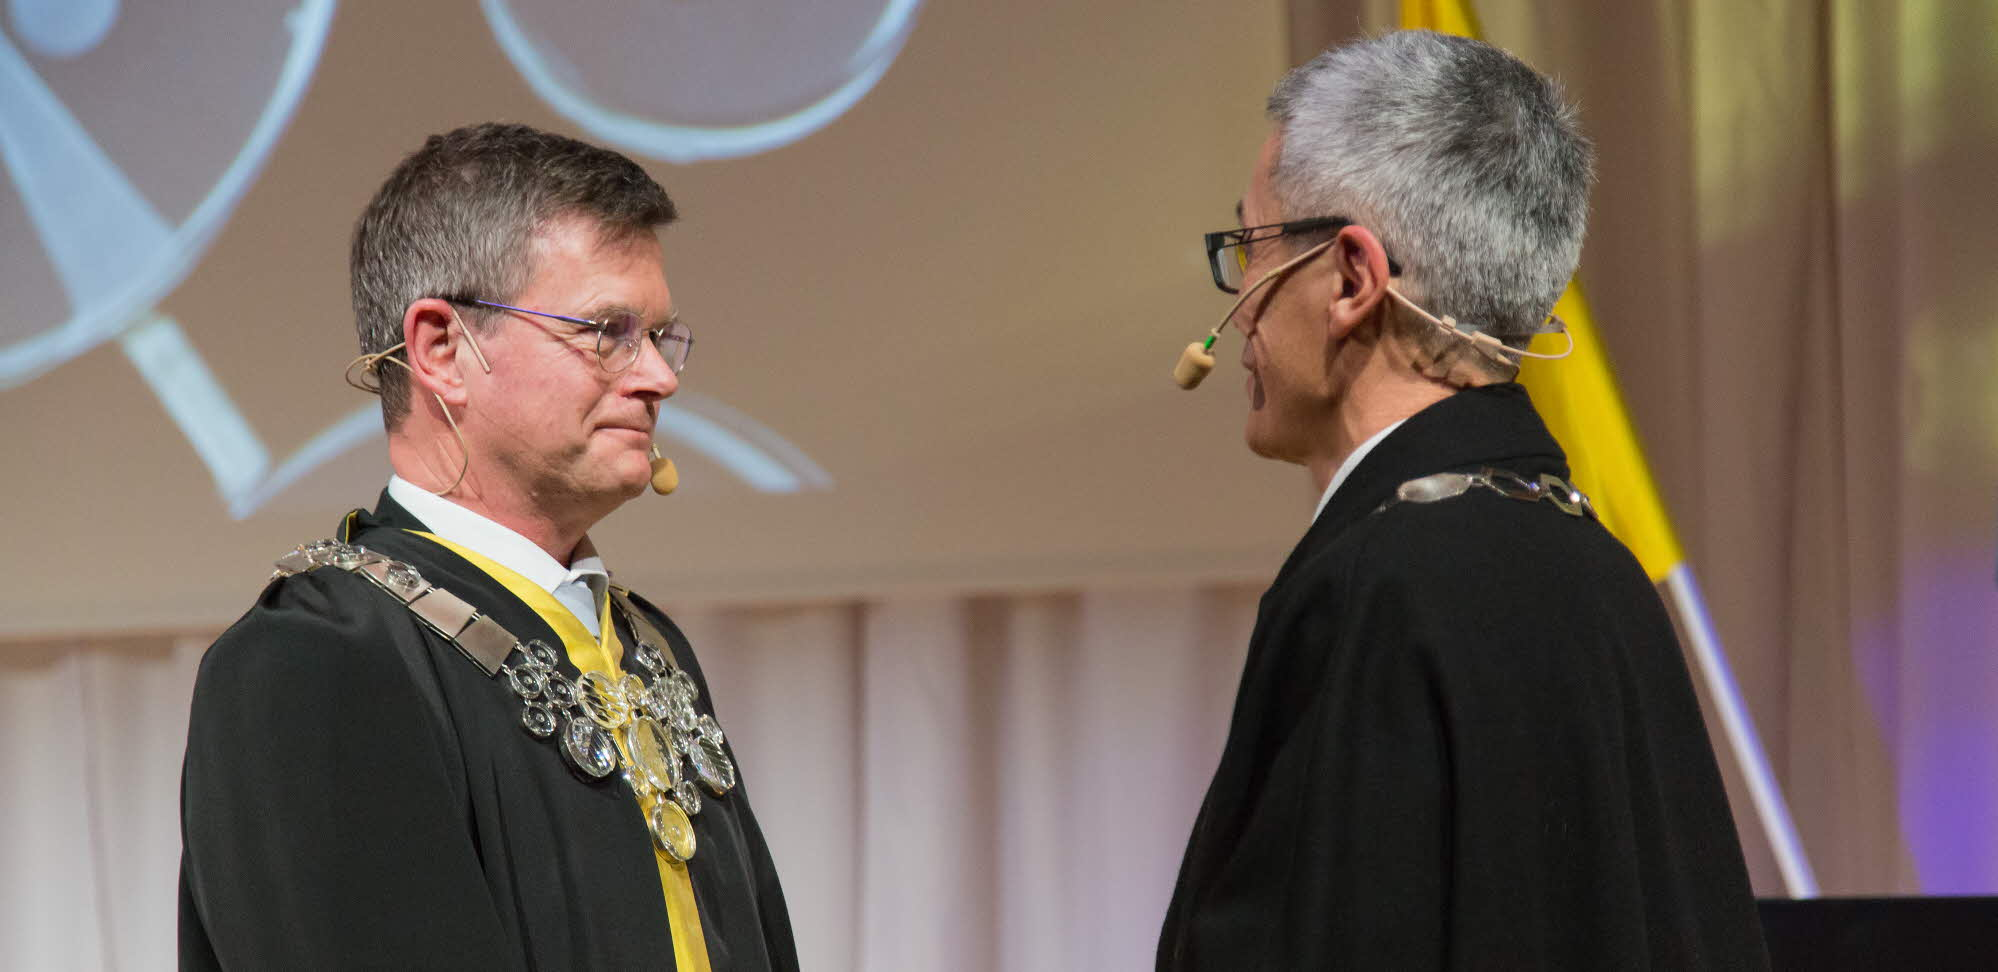 Aronsson and Hwng at the inauguration ceremony